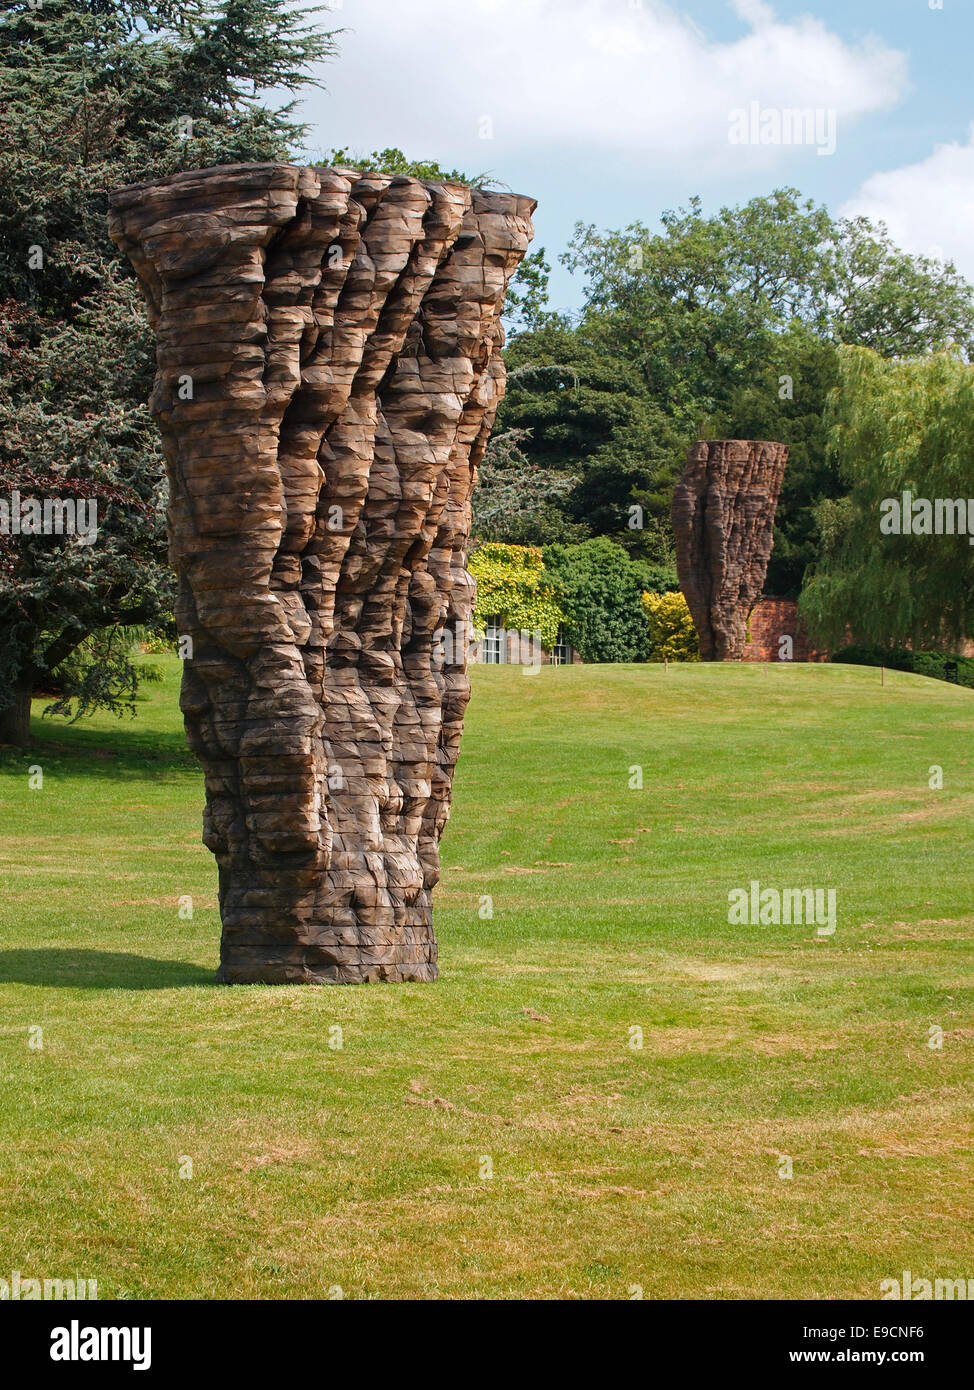 Martin F., a sculpture (2013-4) by Ursula von Rydingsvard at an exhibition of her work at the Yorkshire Sculpture - Stock Image